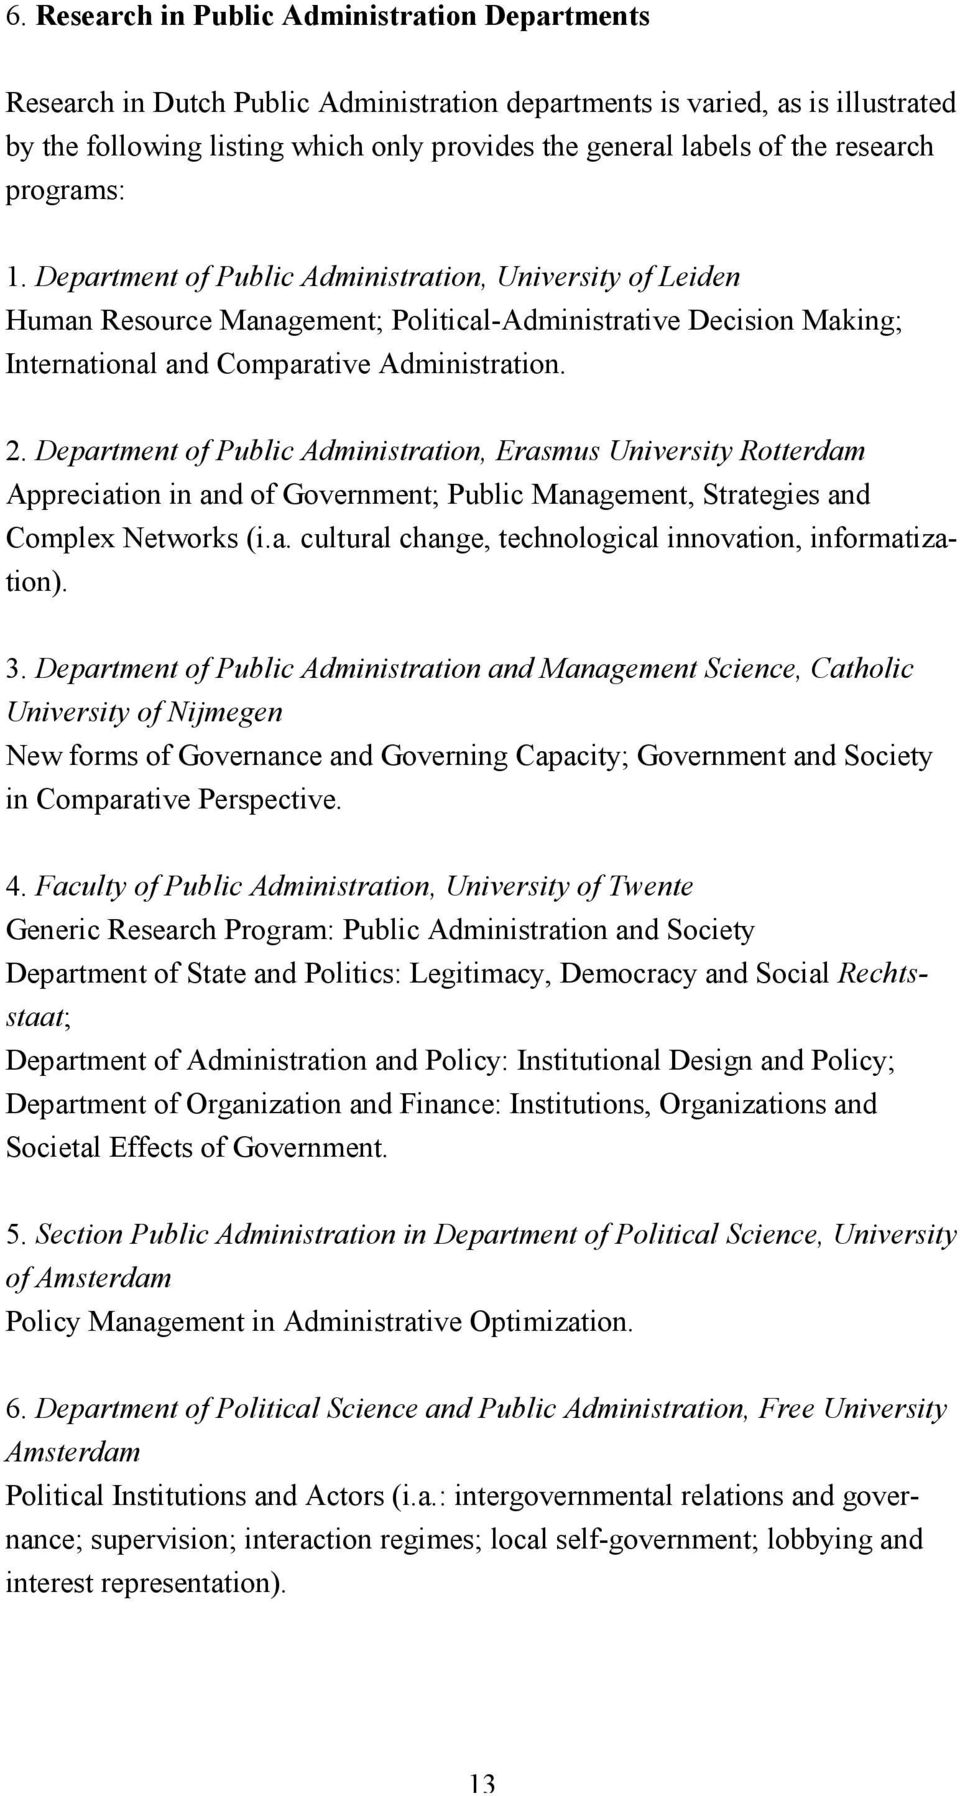 2. Department of Public Administration, Erasmus University Rotterdam Appreciation in and of Government; Public Management, Strategies and Complex Networks (i.a. cultural change, technological innovation, informatization).